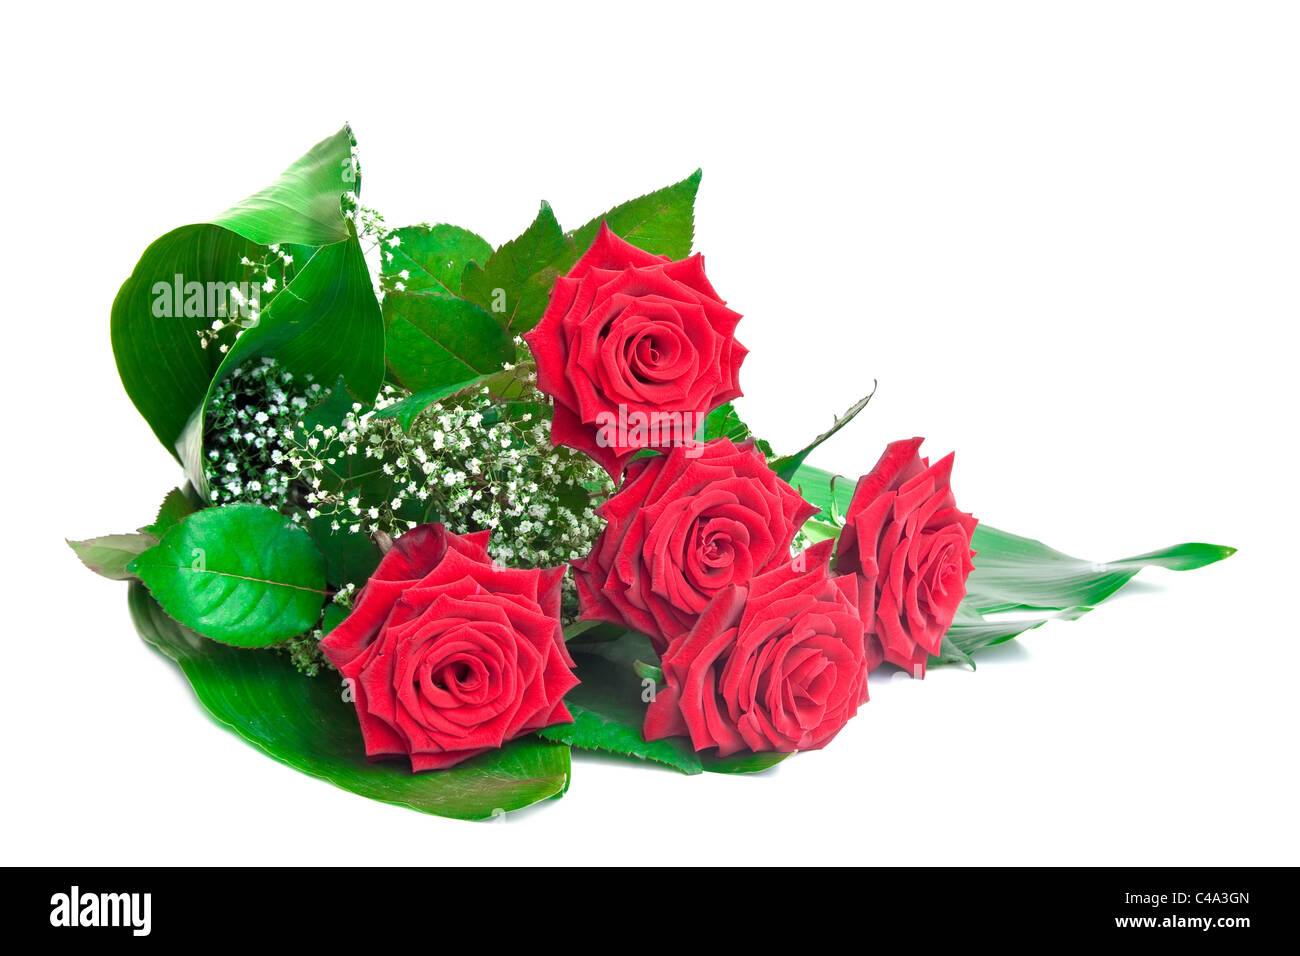 Bouquet of red roses isolated on white background. - Stock Image